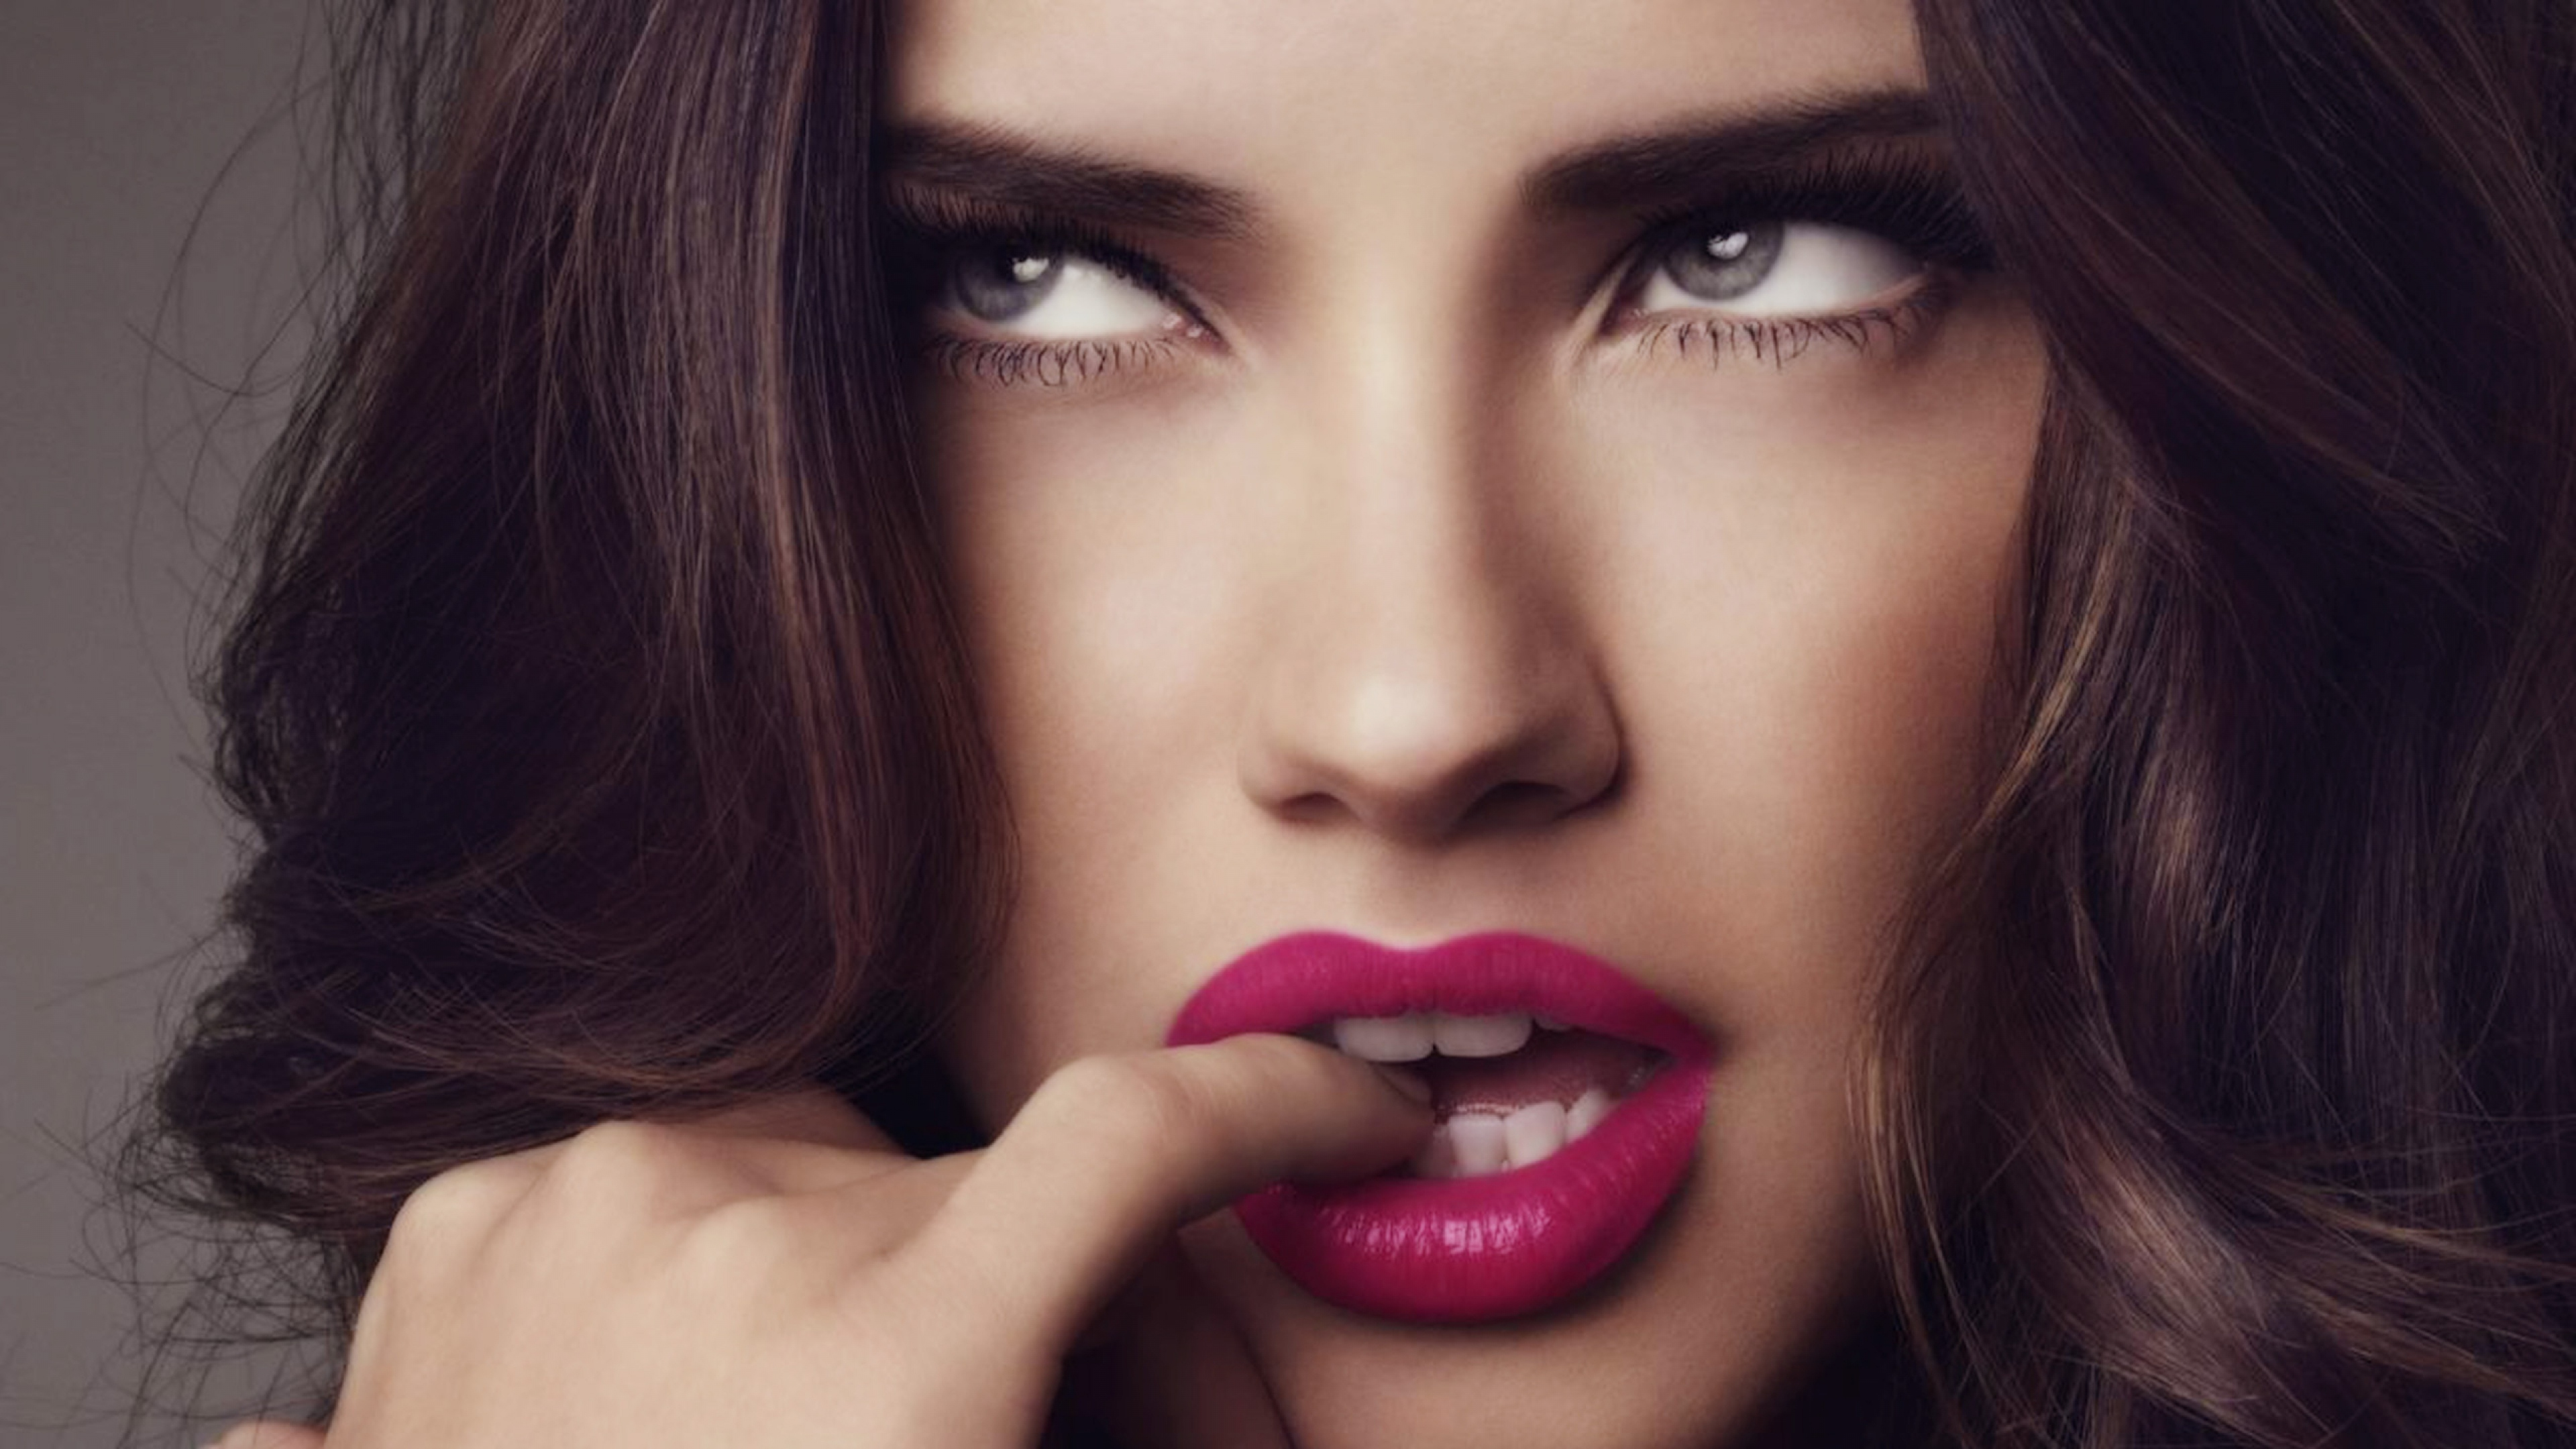 Adriana Lima Wallpaper For Computer